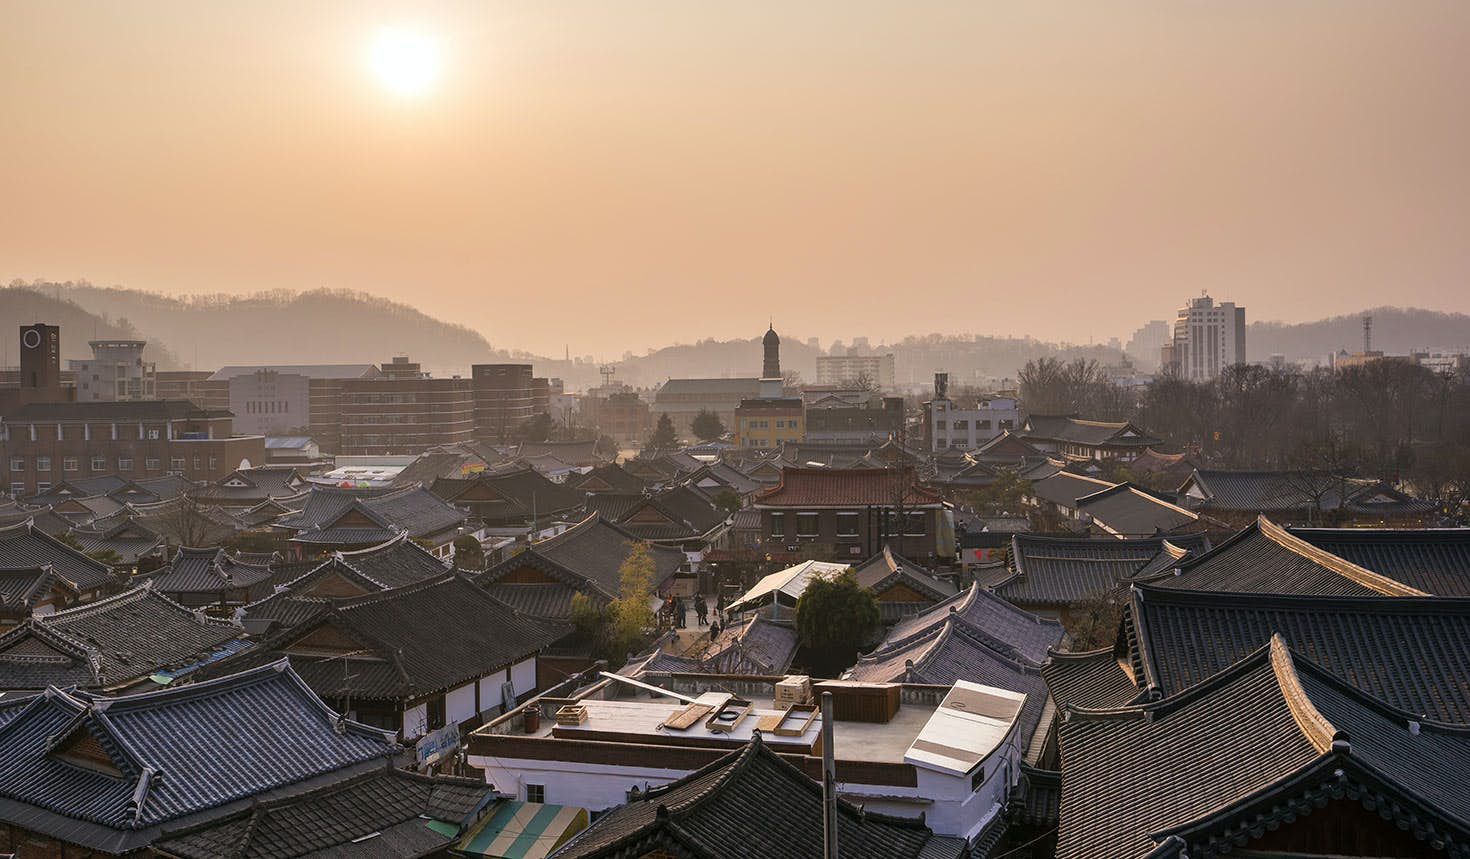 Jeonju Hanok Village is a time capsule of traditional architecture in the centre of the city © Kangheewan / Getty Images